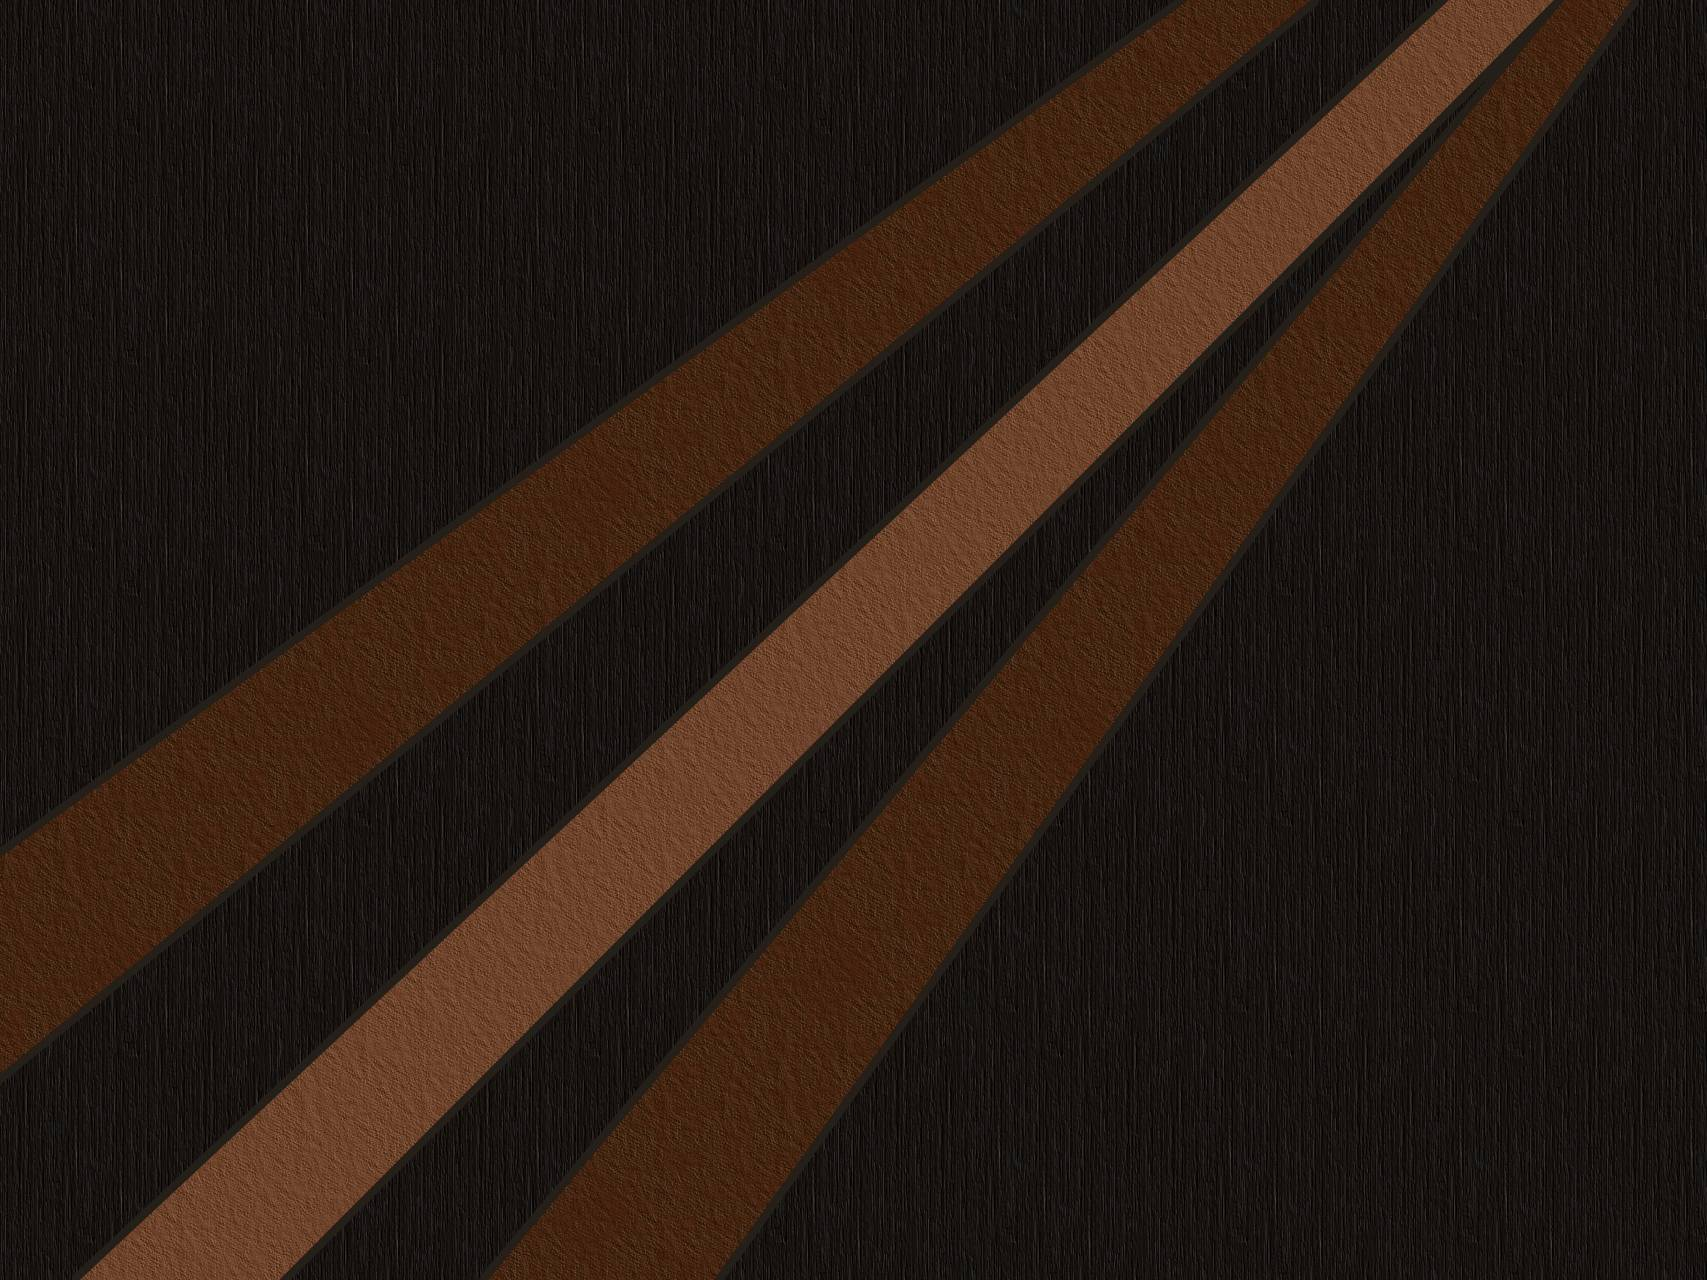 Soft Stripes HD